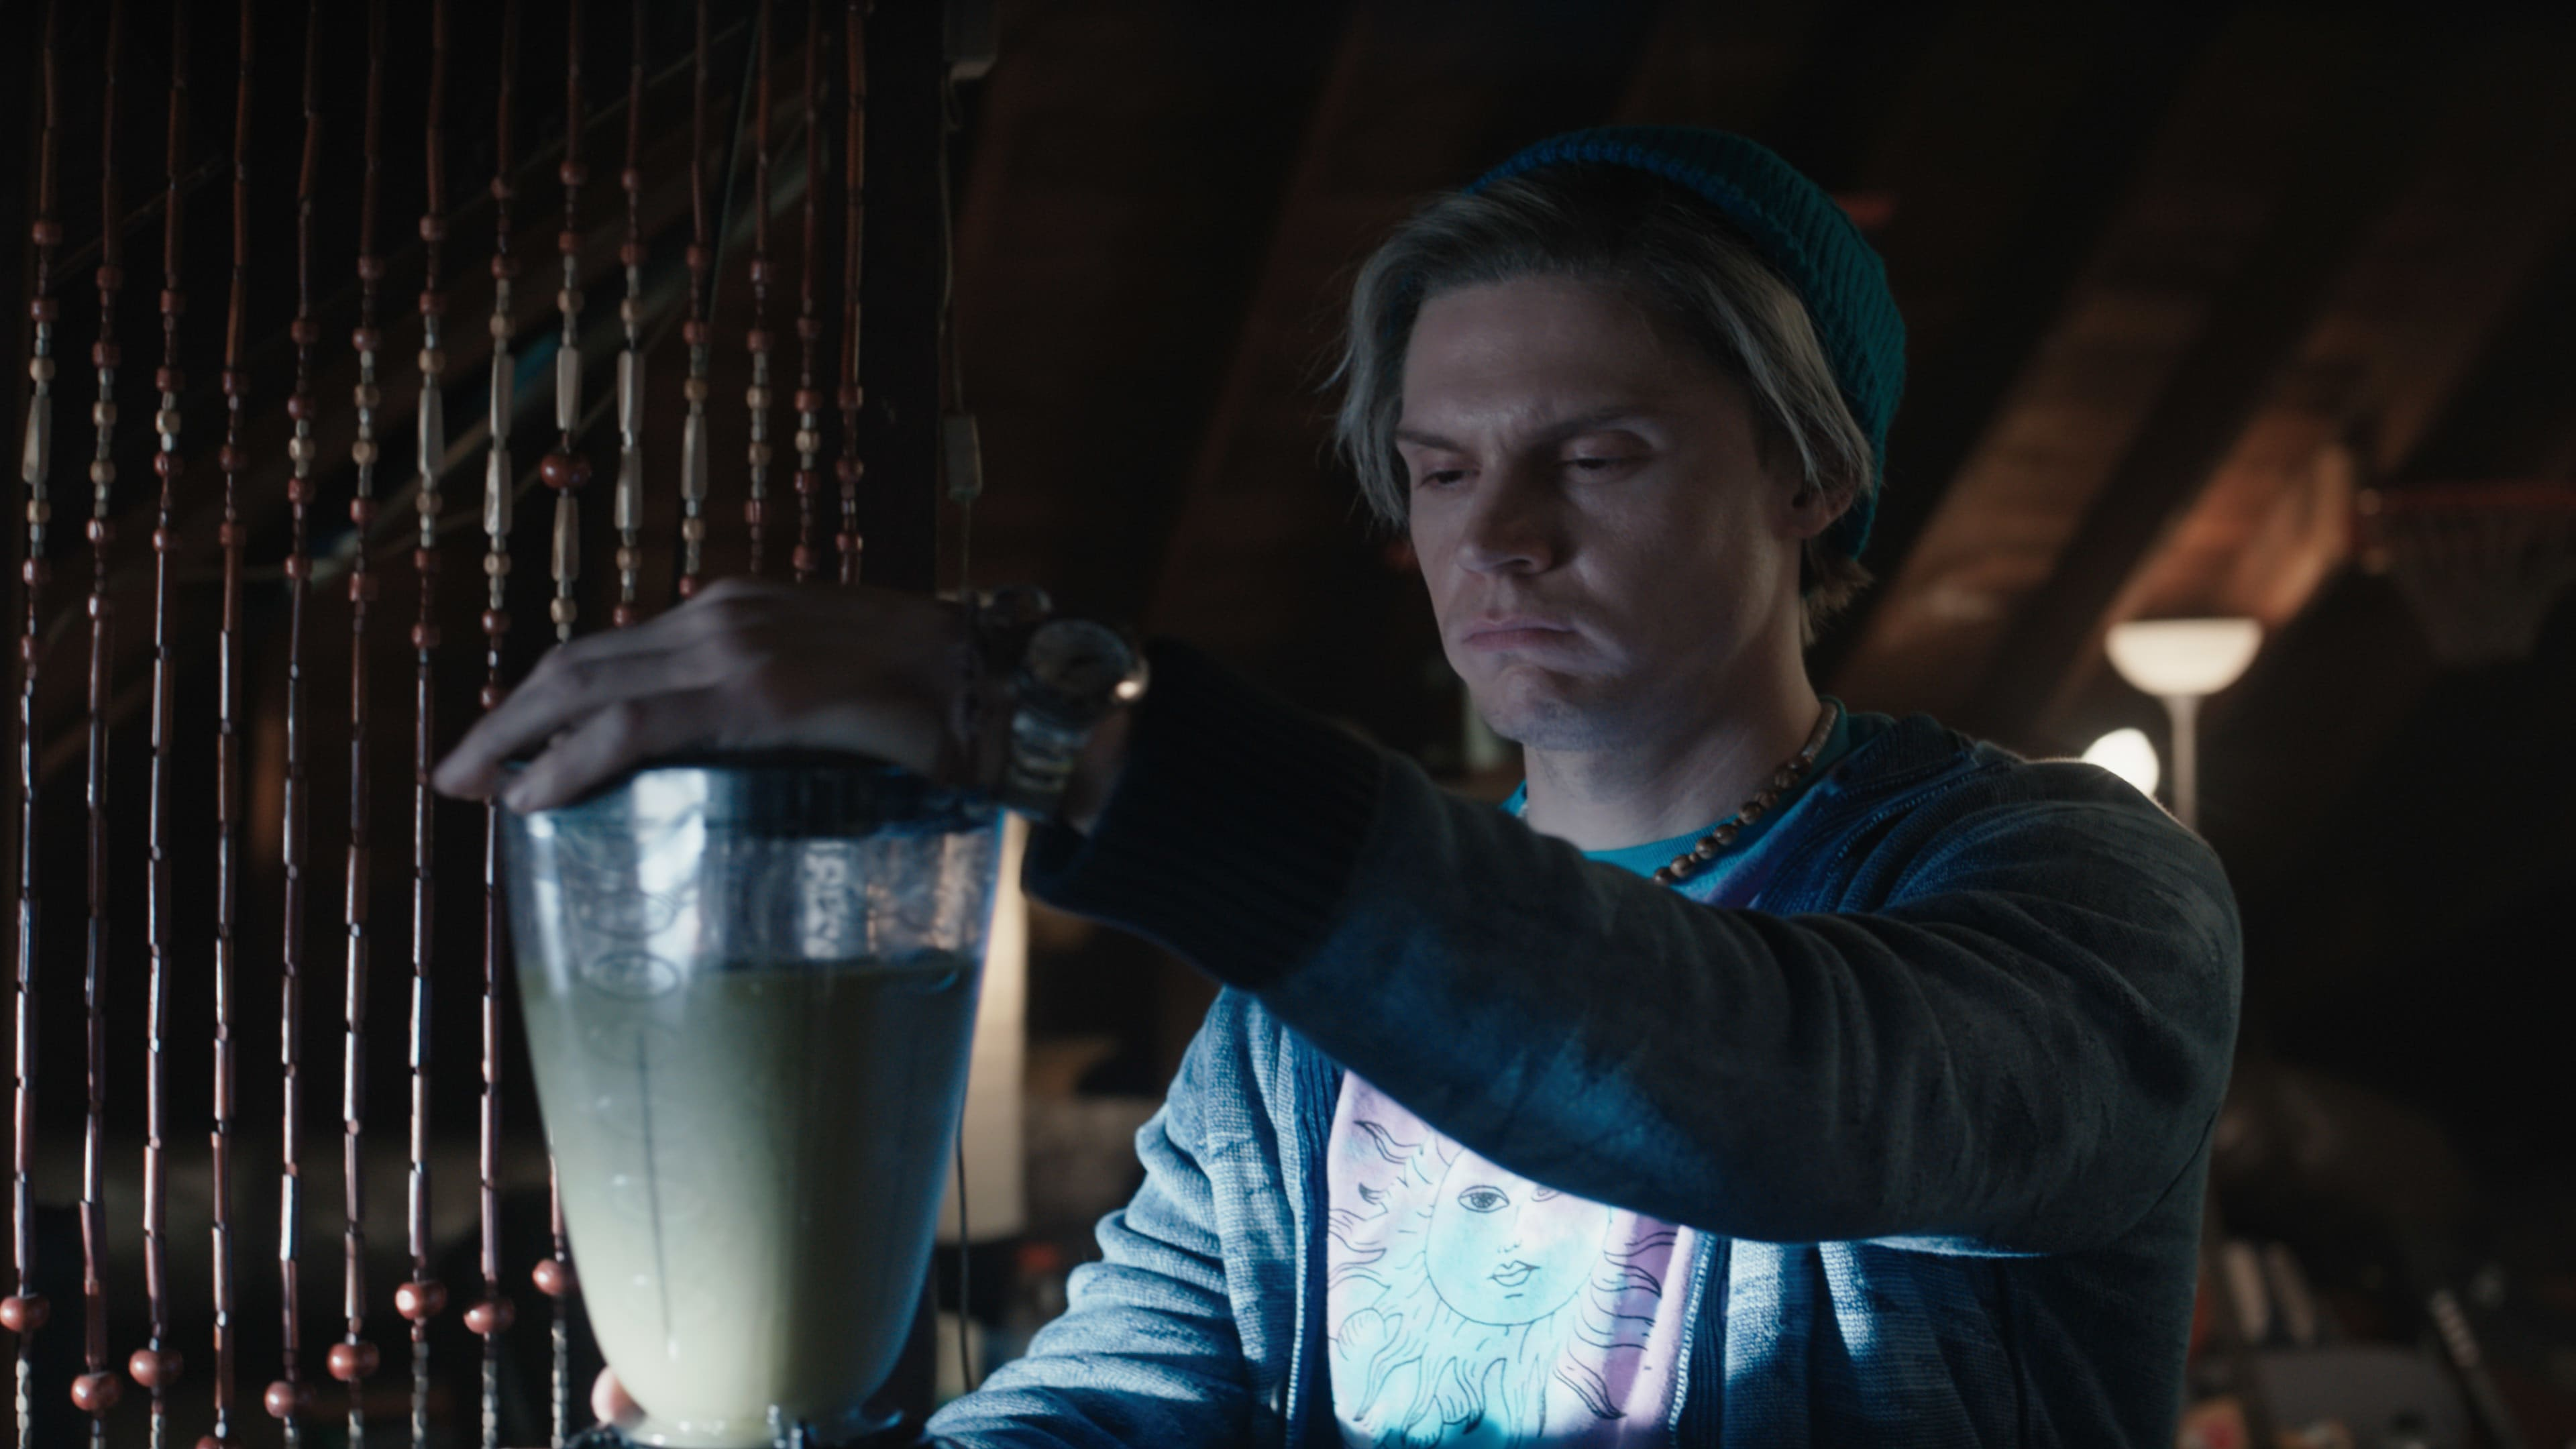 Pietro Maximoff/Ralph Bohner (Evan Peters) in Marvel Studios' WANDAVISION exclusively on Disney+. Photo courtesy of Marvel Studios. ©Marvel Studios 2021. All Rights Reserved.